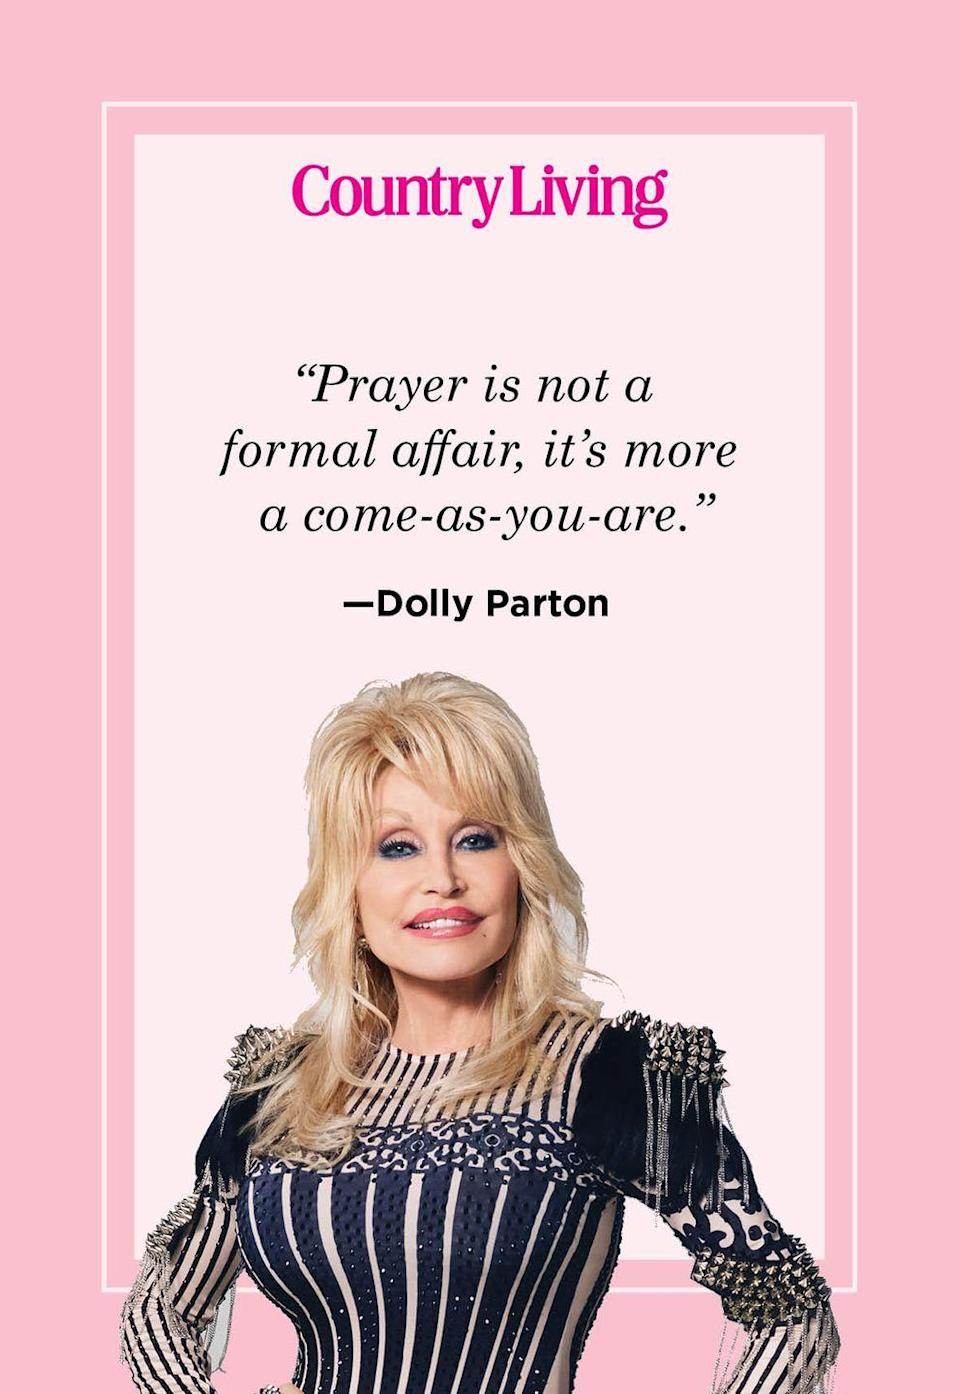 "<p>""Prayer is not a formal affair, it's more a come-as-you-are.""</p>"